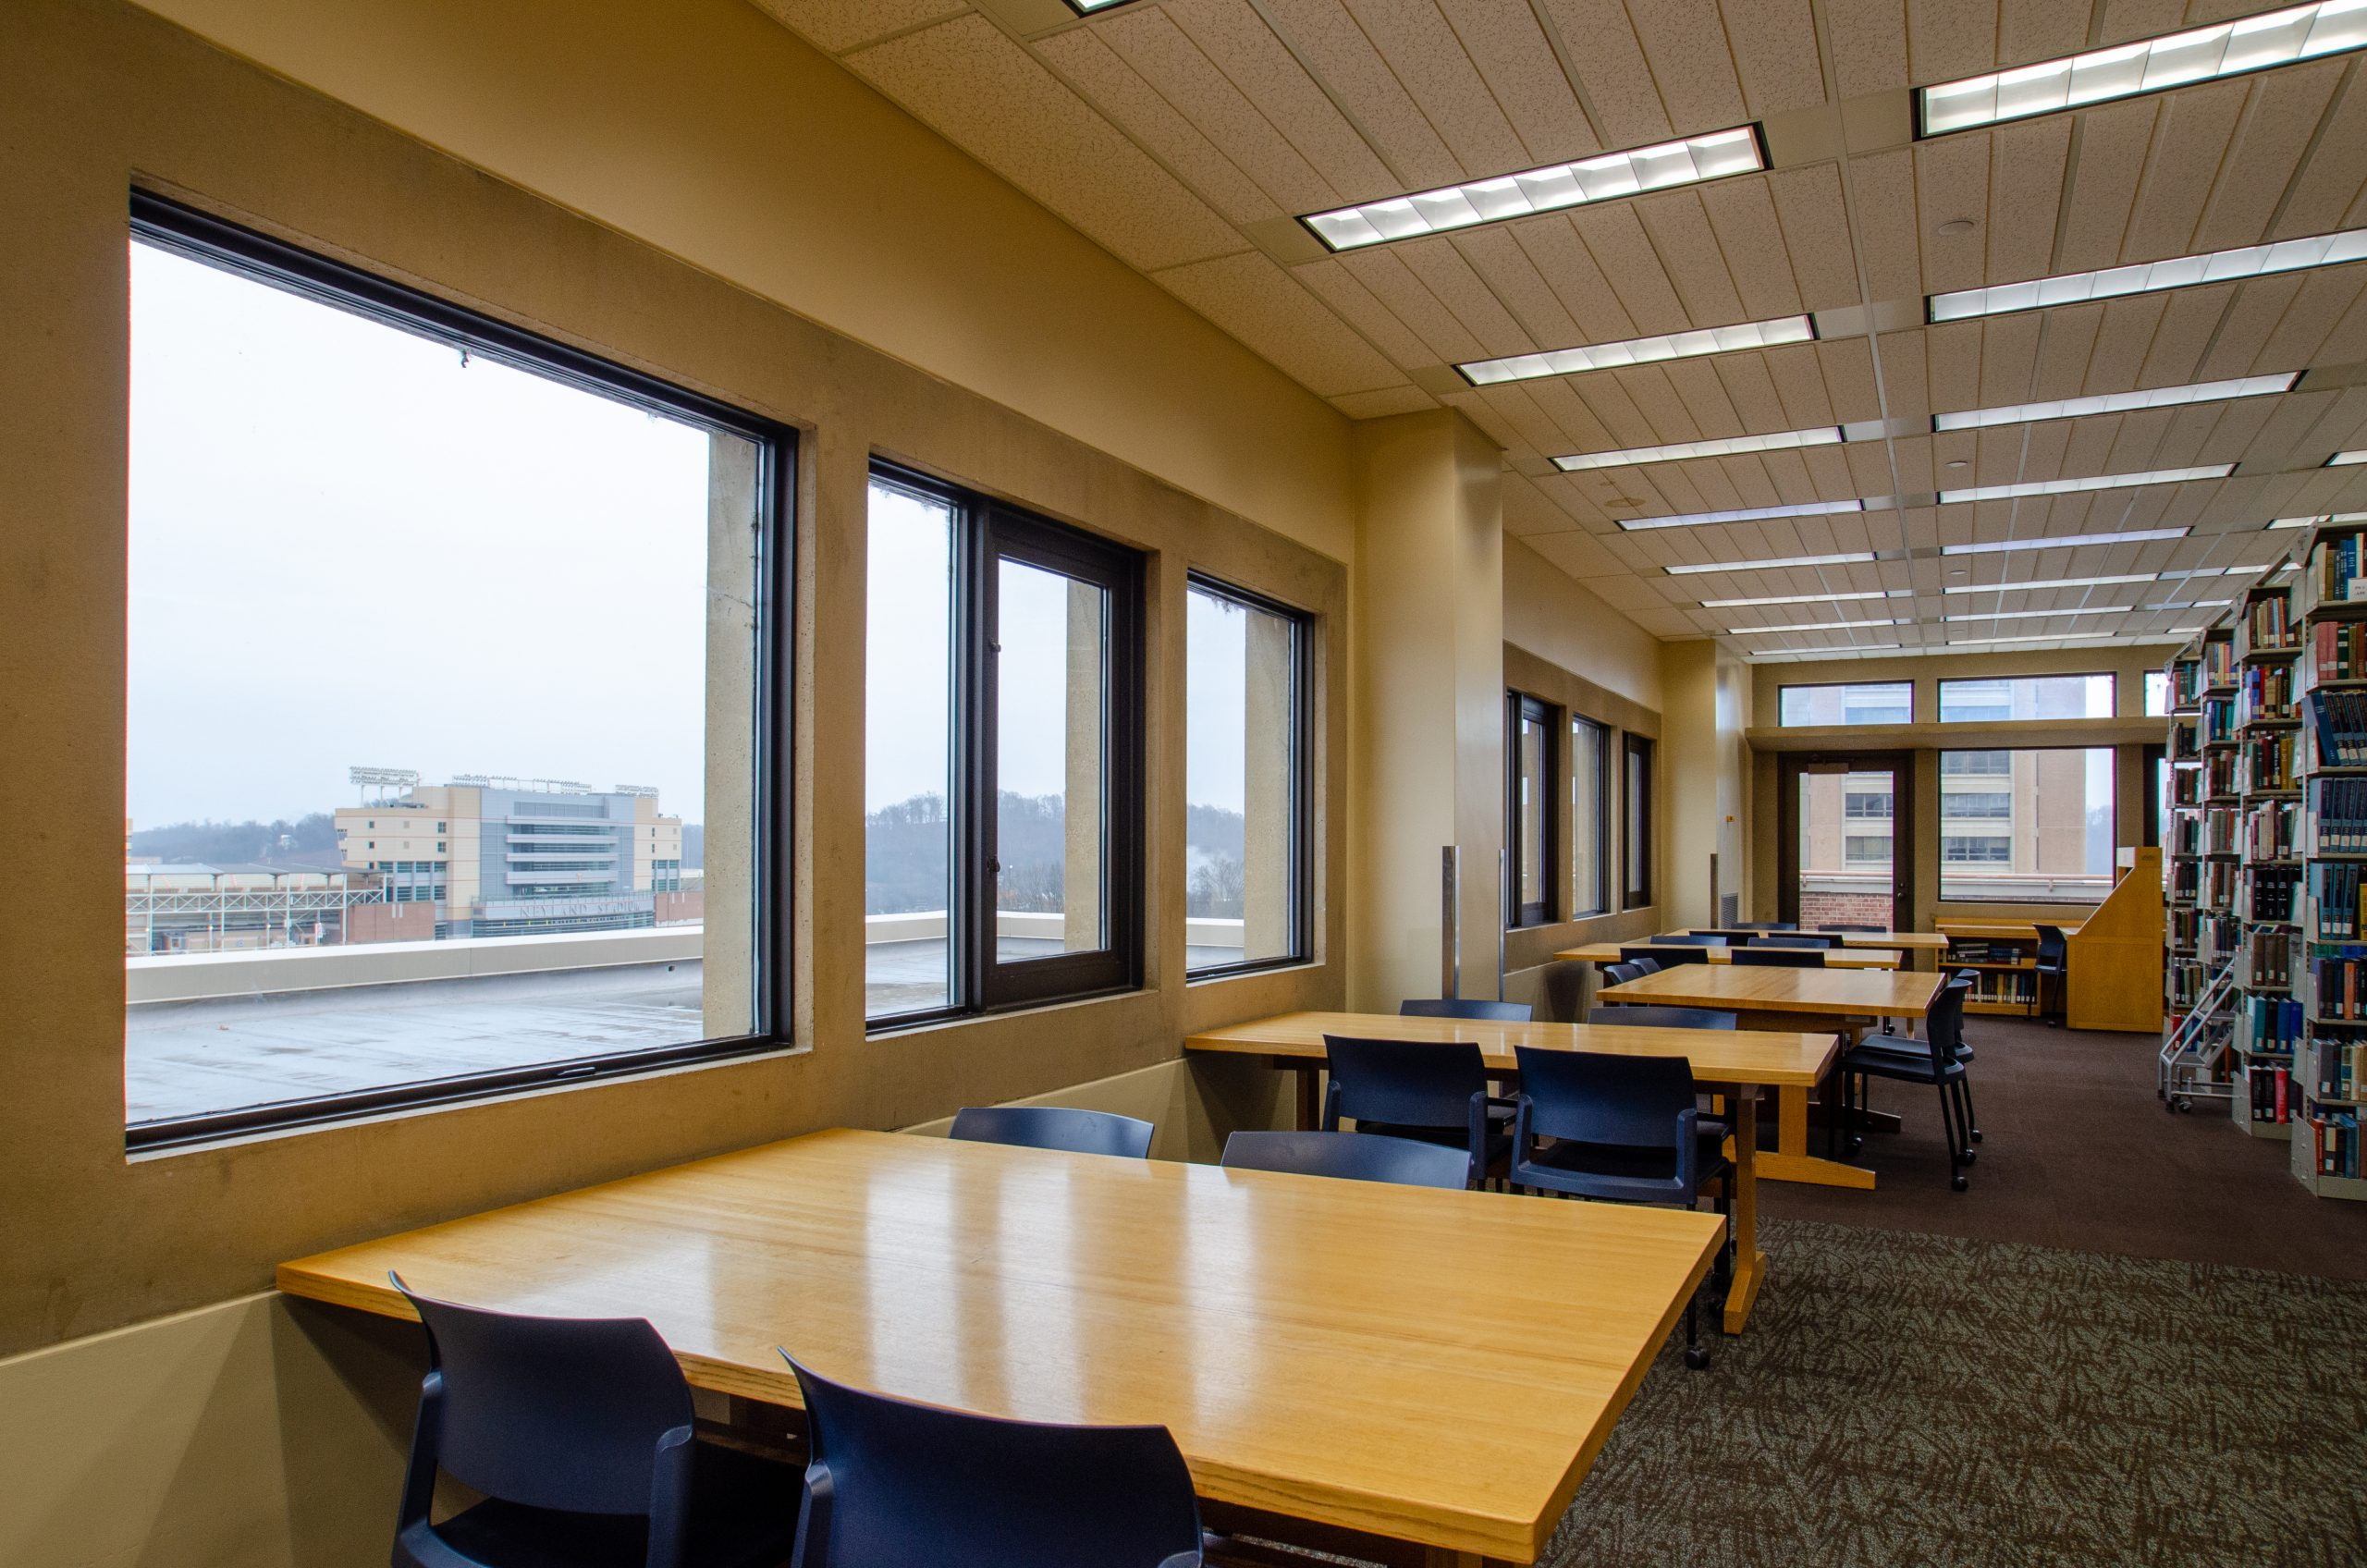 Quiet Study Tables in hodges library